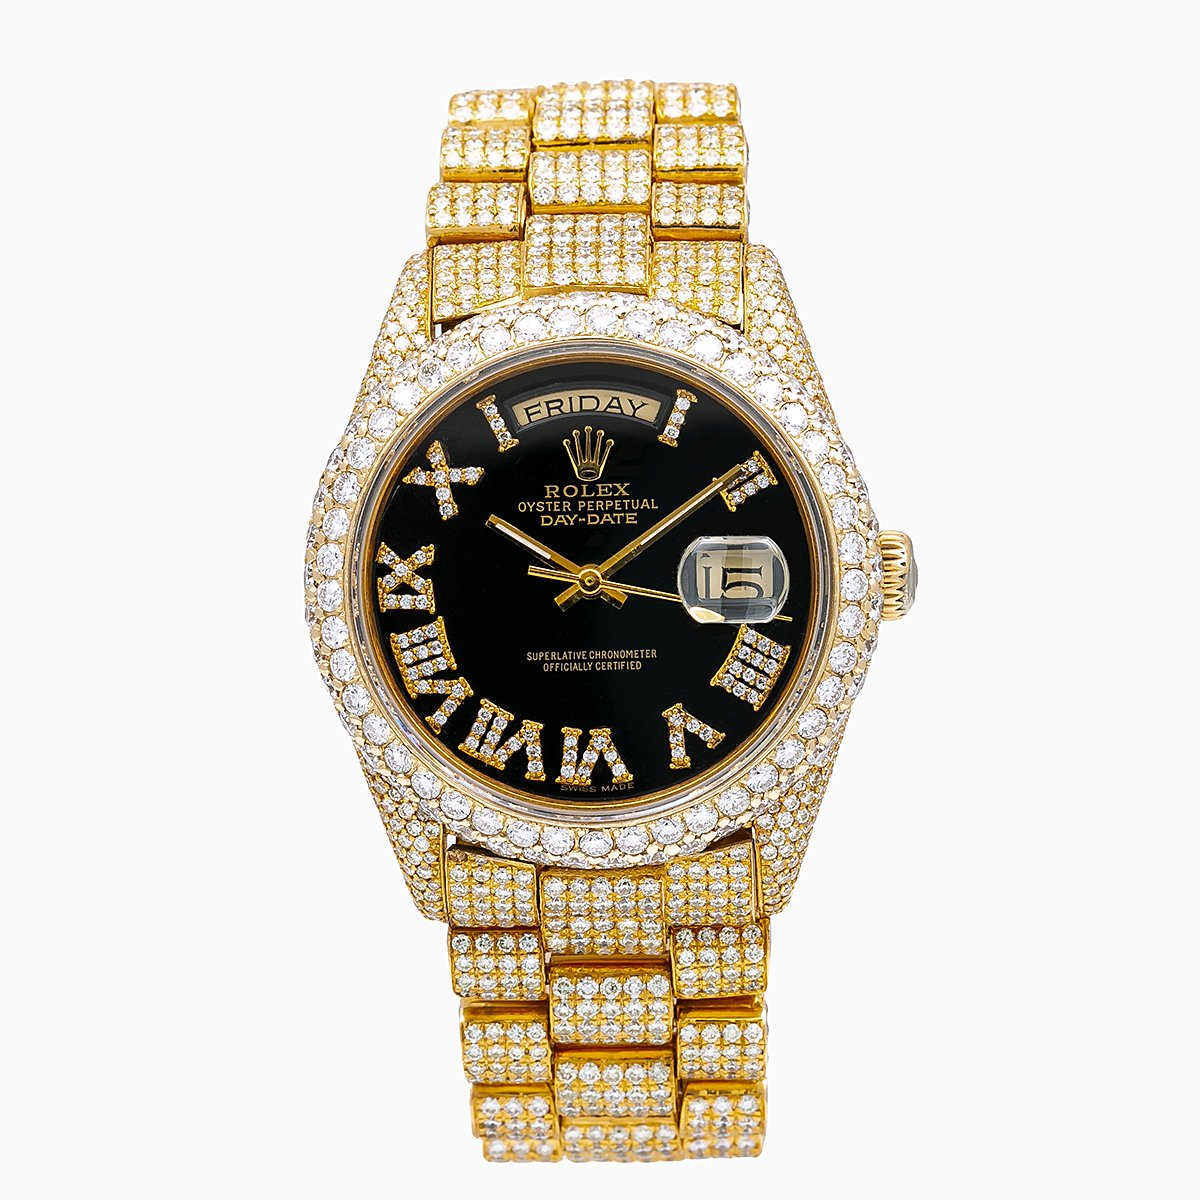 Rolex Day-Date Diamond Watch, 18038 36mm, Black Dial With 23.25 CT Diamonds